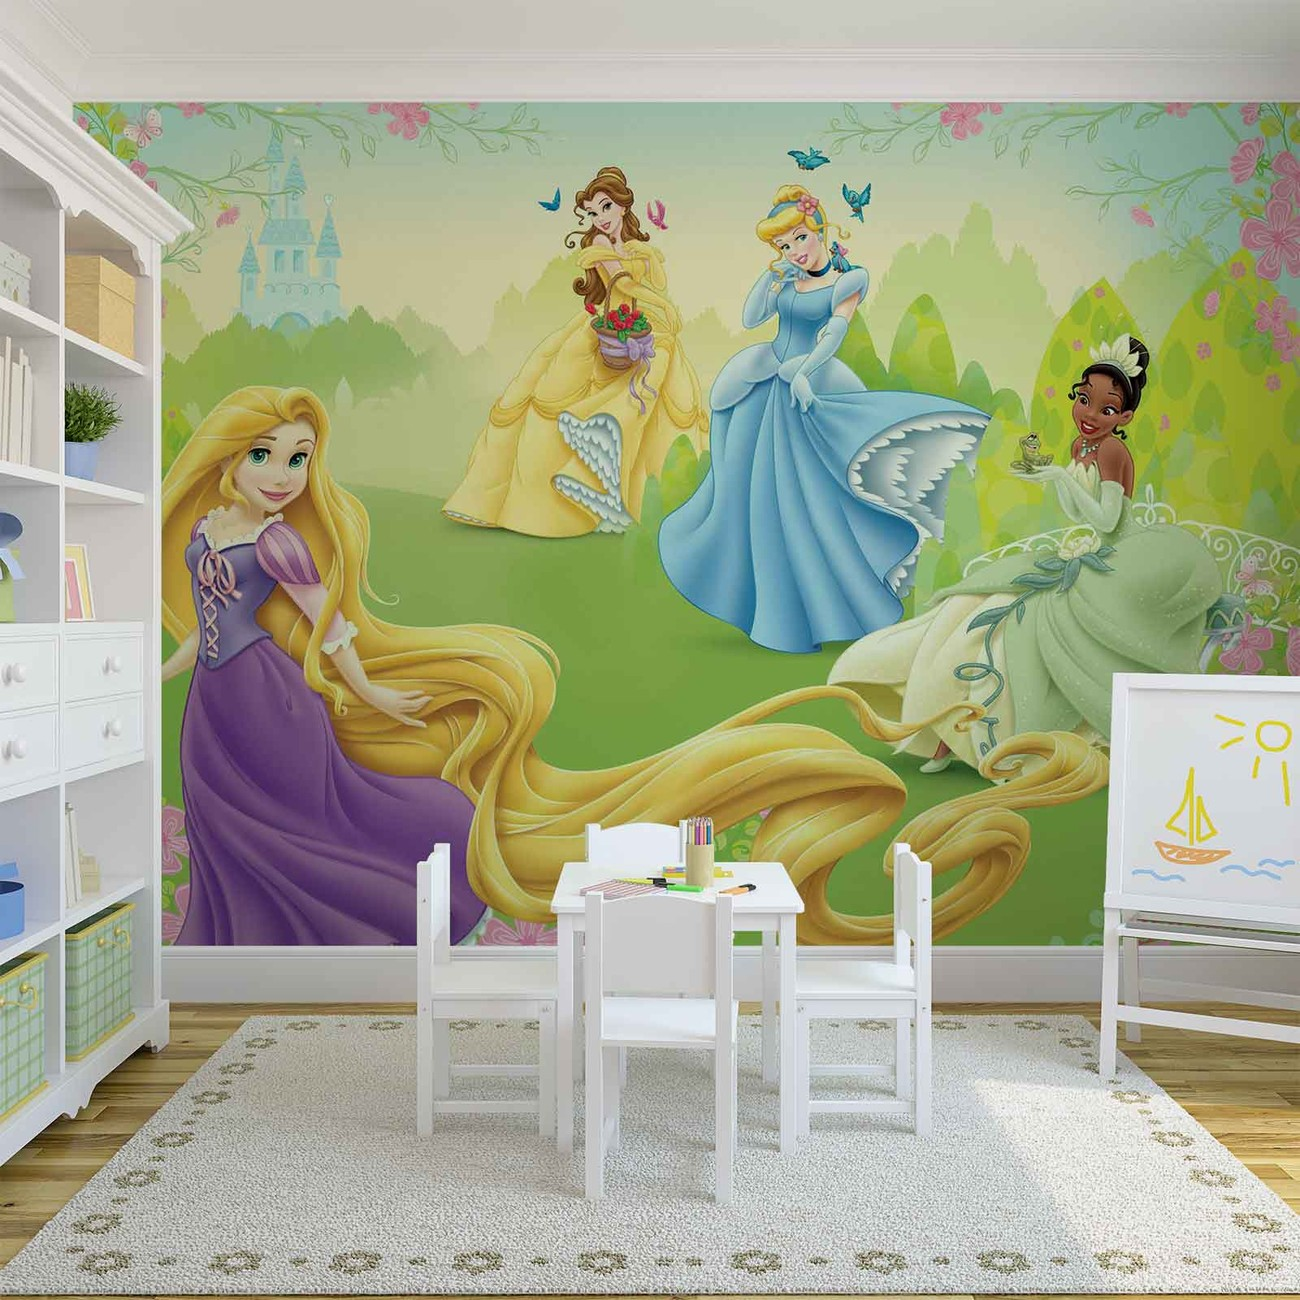 Disney princesses rapunzel tiana belle wall paper mural for Disney princess wall mural tesco